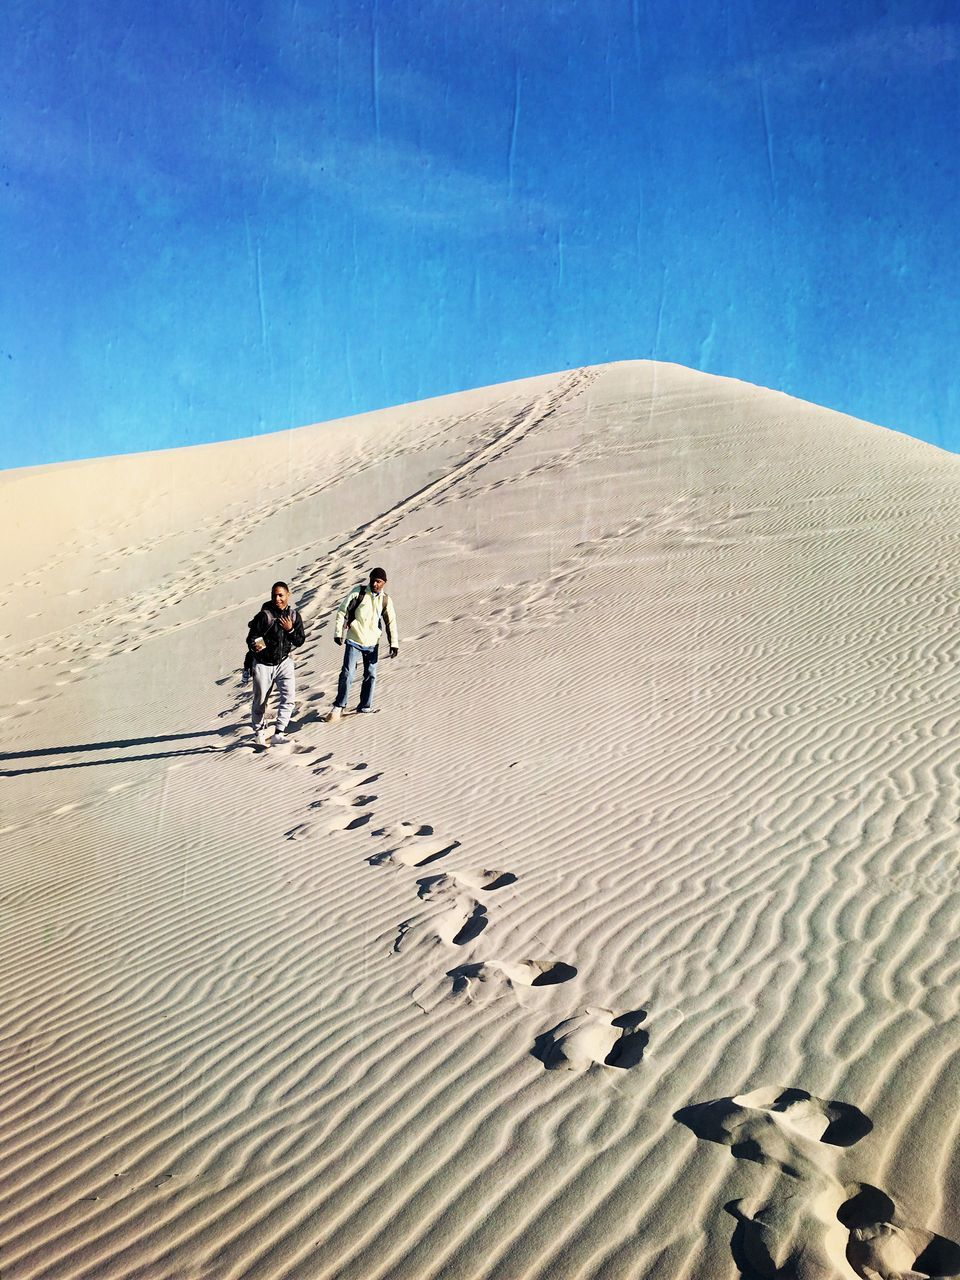 sand, desert, walking, footprint, sand dune, outdoors, arid climate, day, togetherness, real people, sky, two people, nature, mammal, domestic animals, full length, men, people